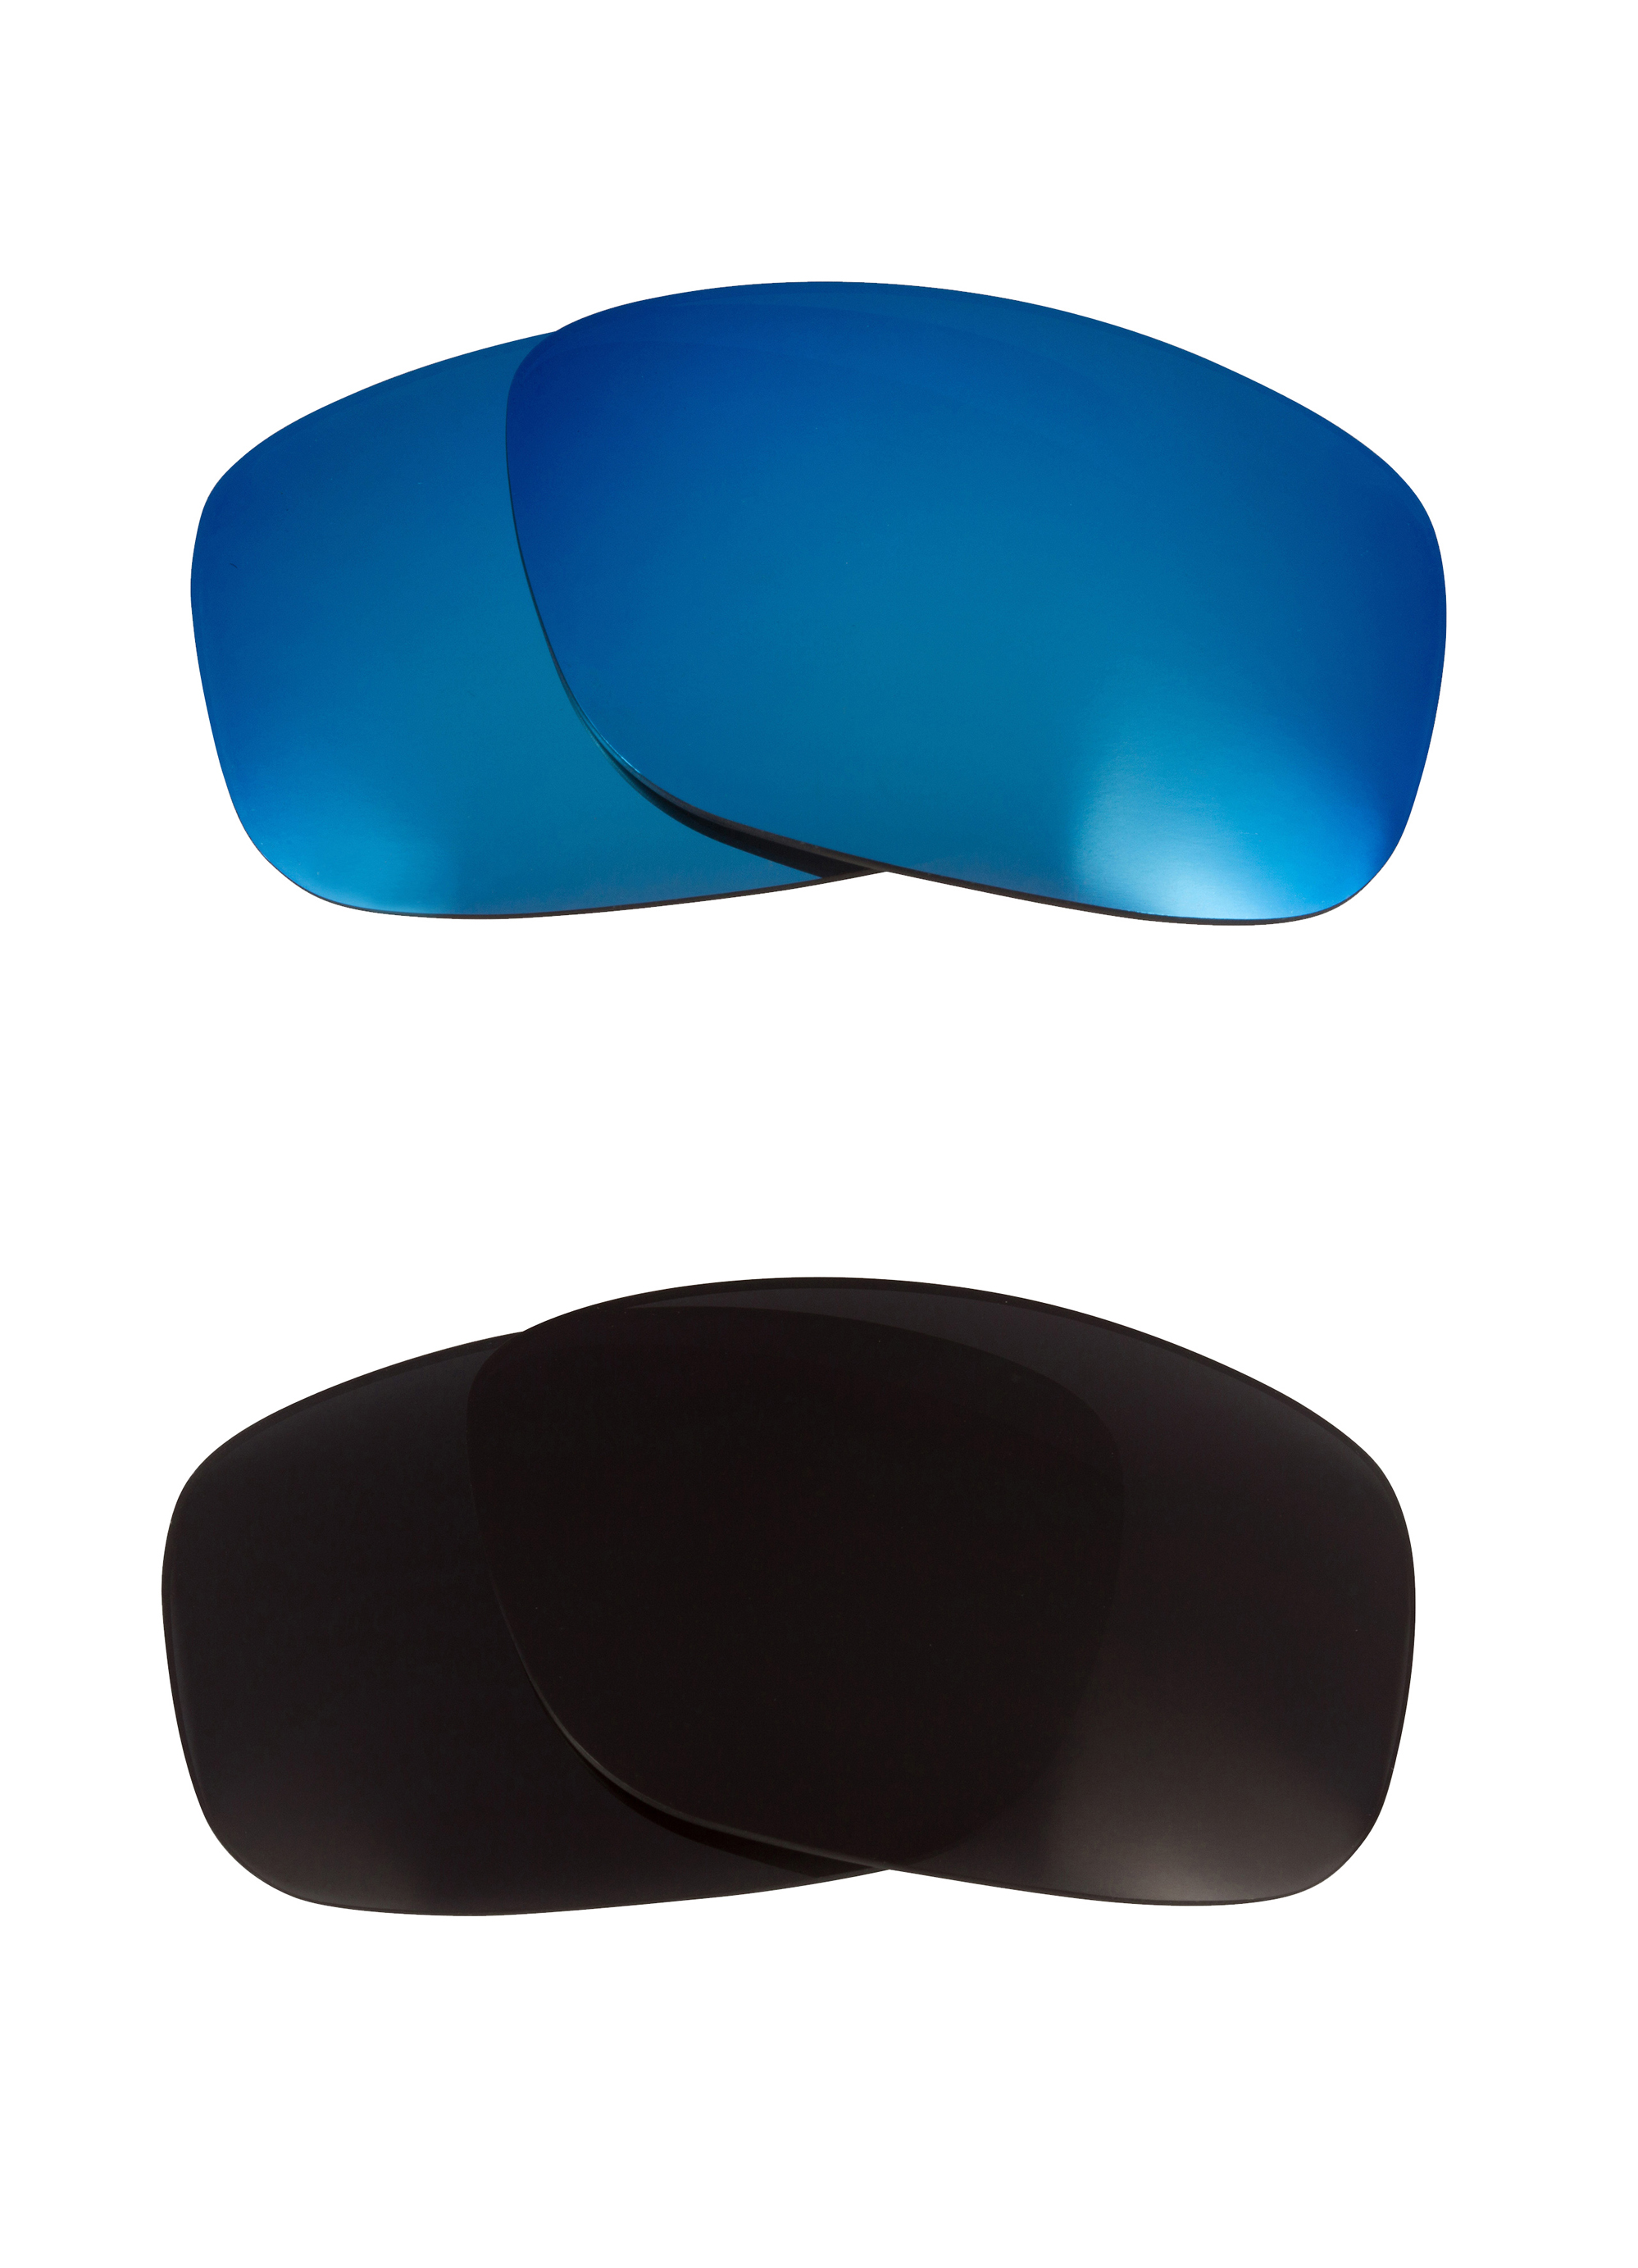 a194e89b1f Details about Thinlink ASIAN Replacement Lenses Black   Blue by SEEK fits  OAKLEY Sunglasses